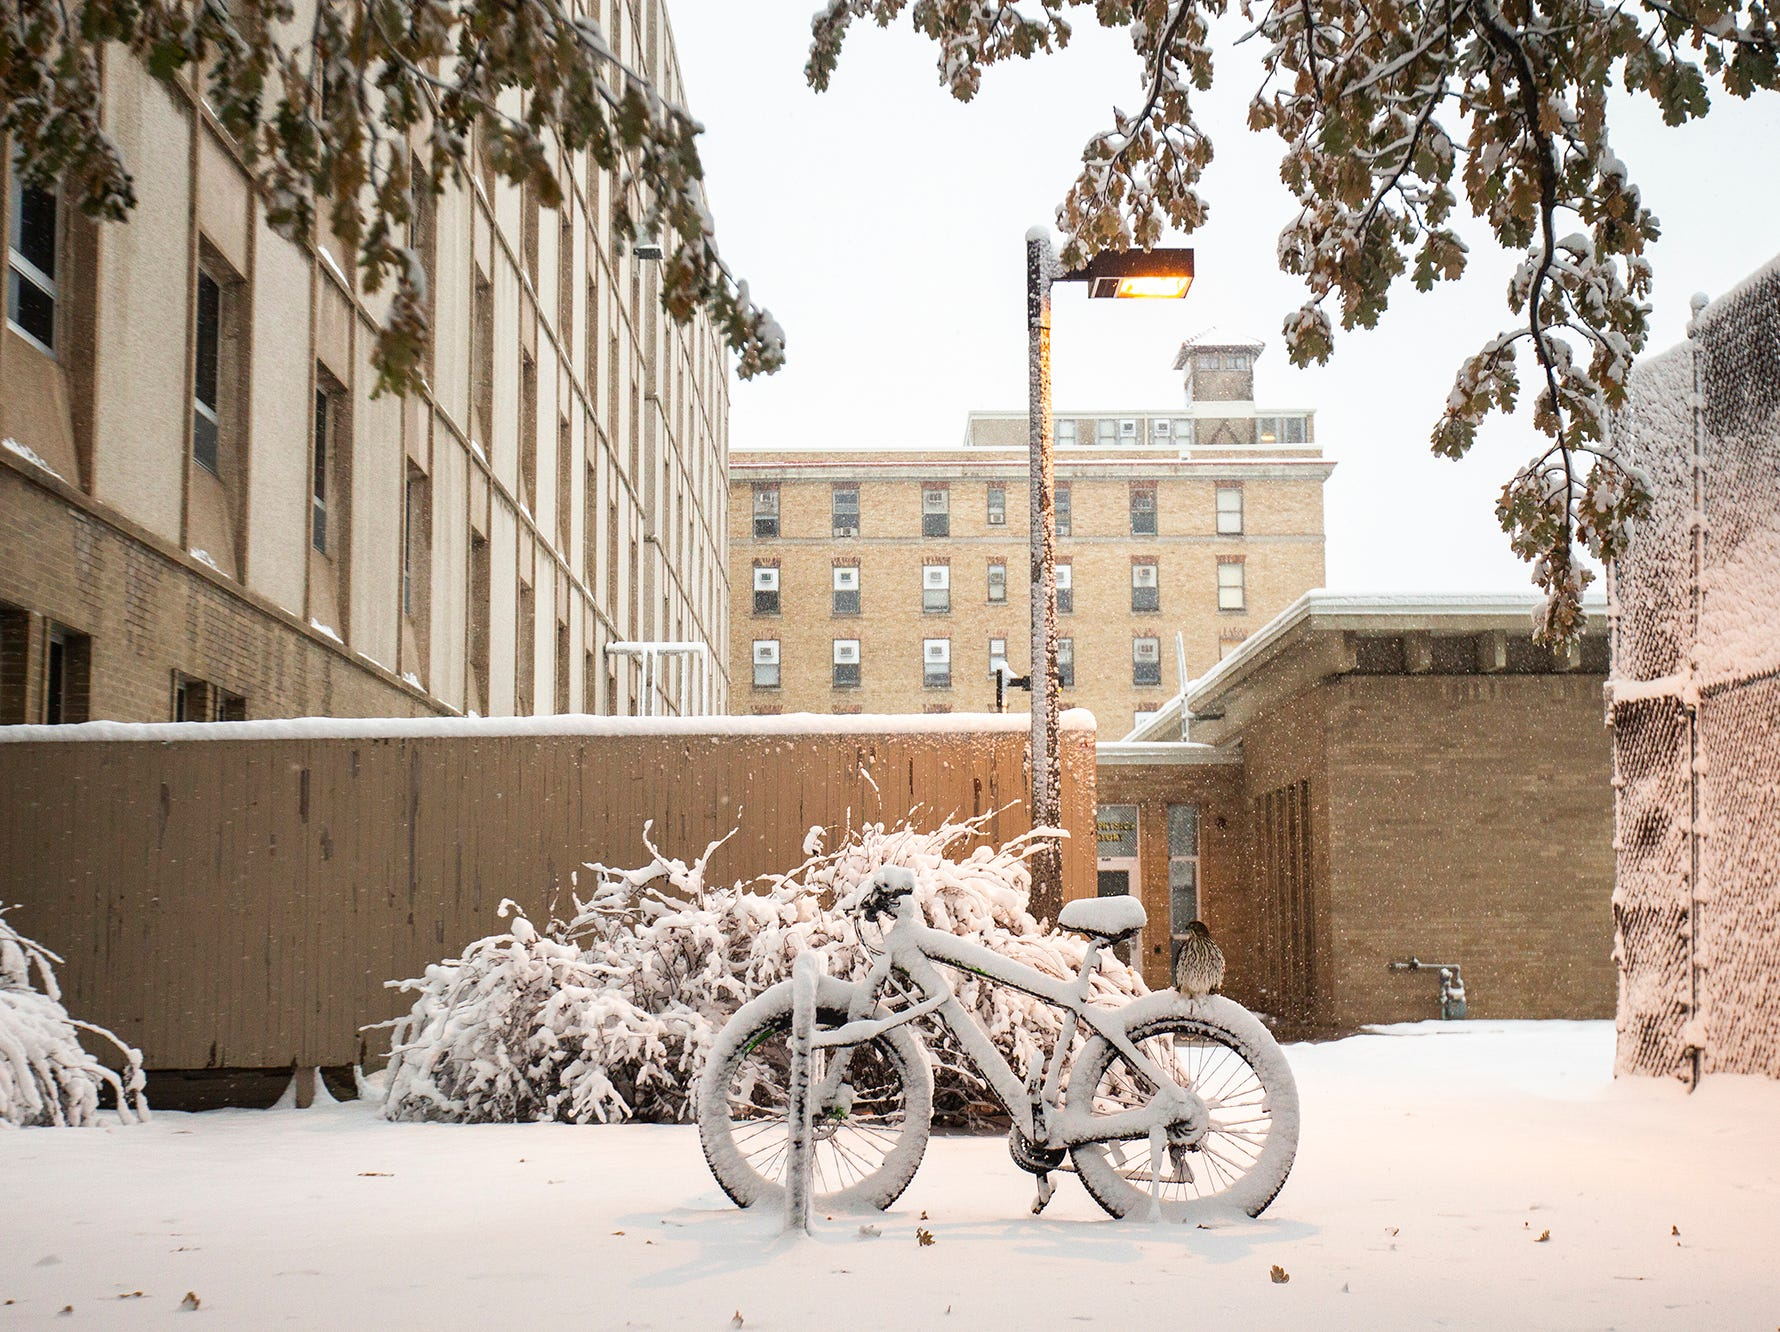 A hawk lands on a snow covered bicycle during a storm on Sunday, Nov. 25, 2018, outside Van Allen Hall on the University of Iowa campus in Iowa City.